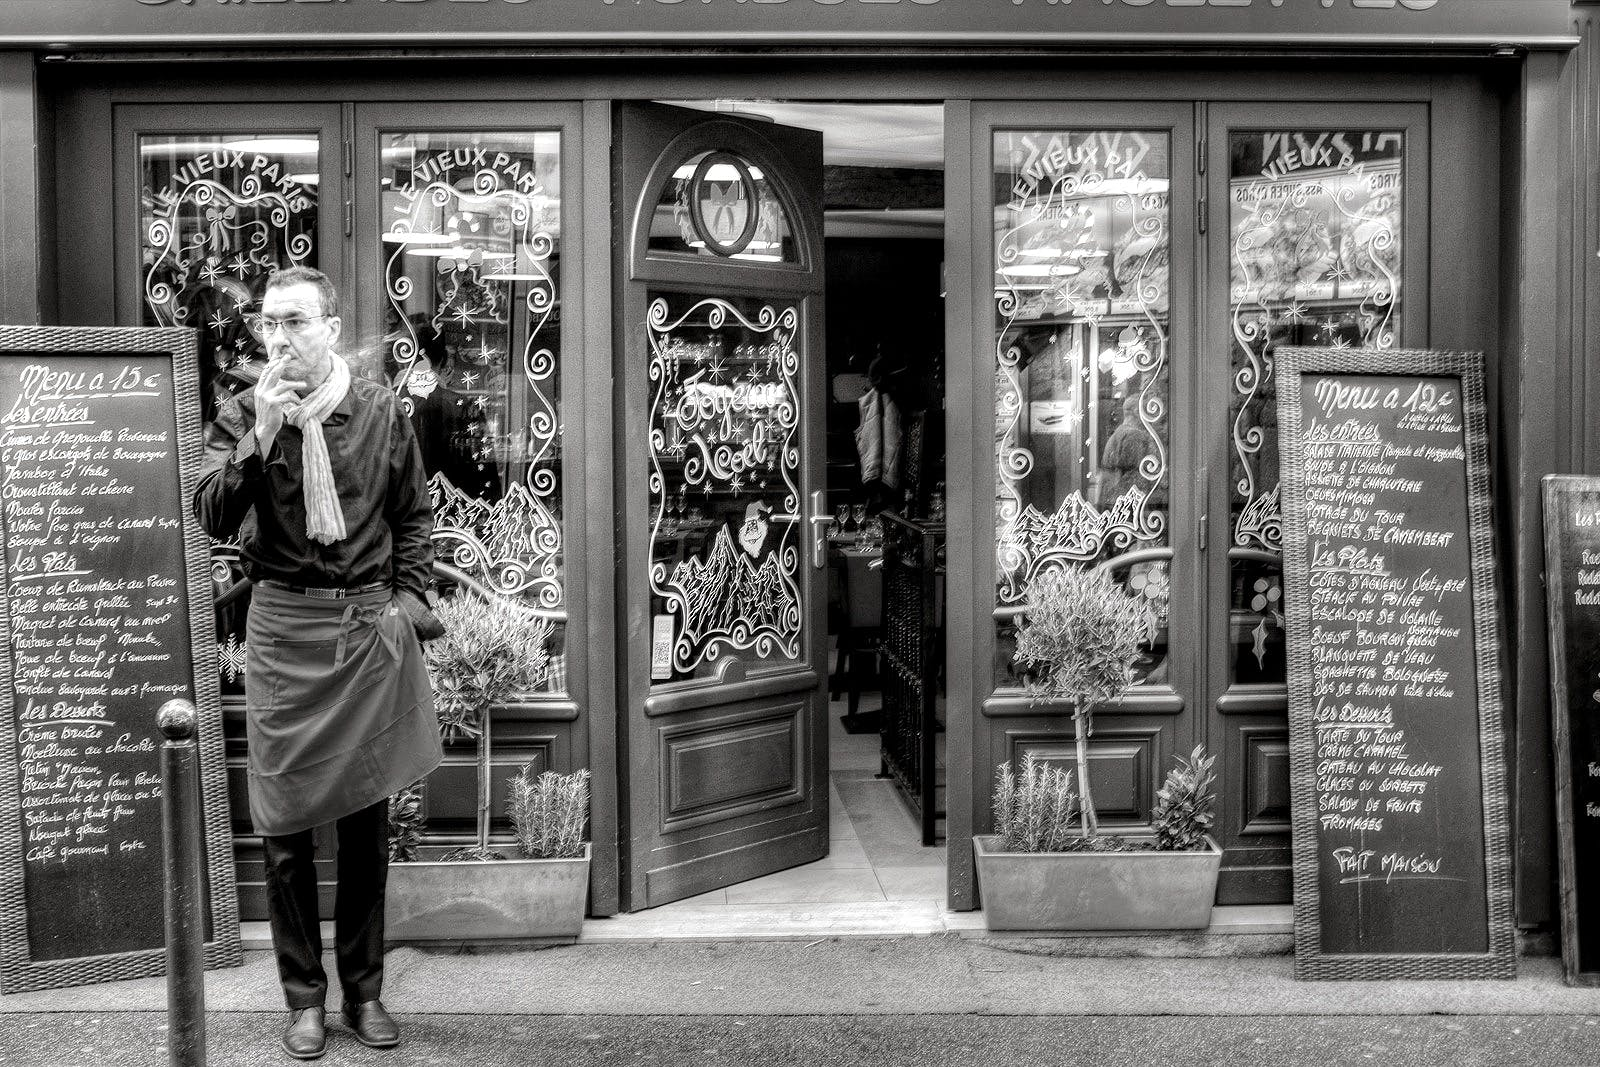 Grayscale Photography of Man Beside Store